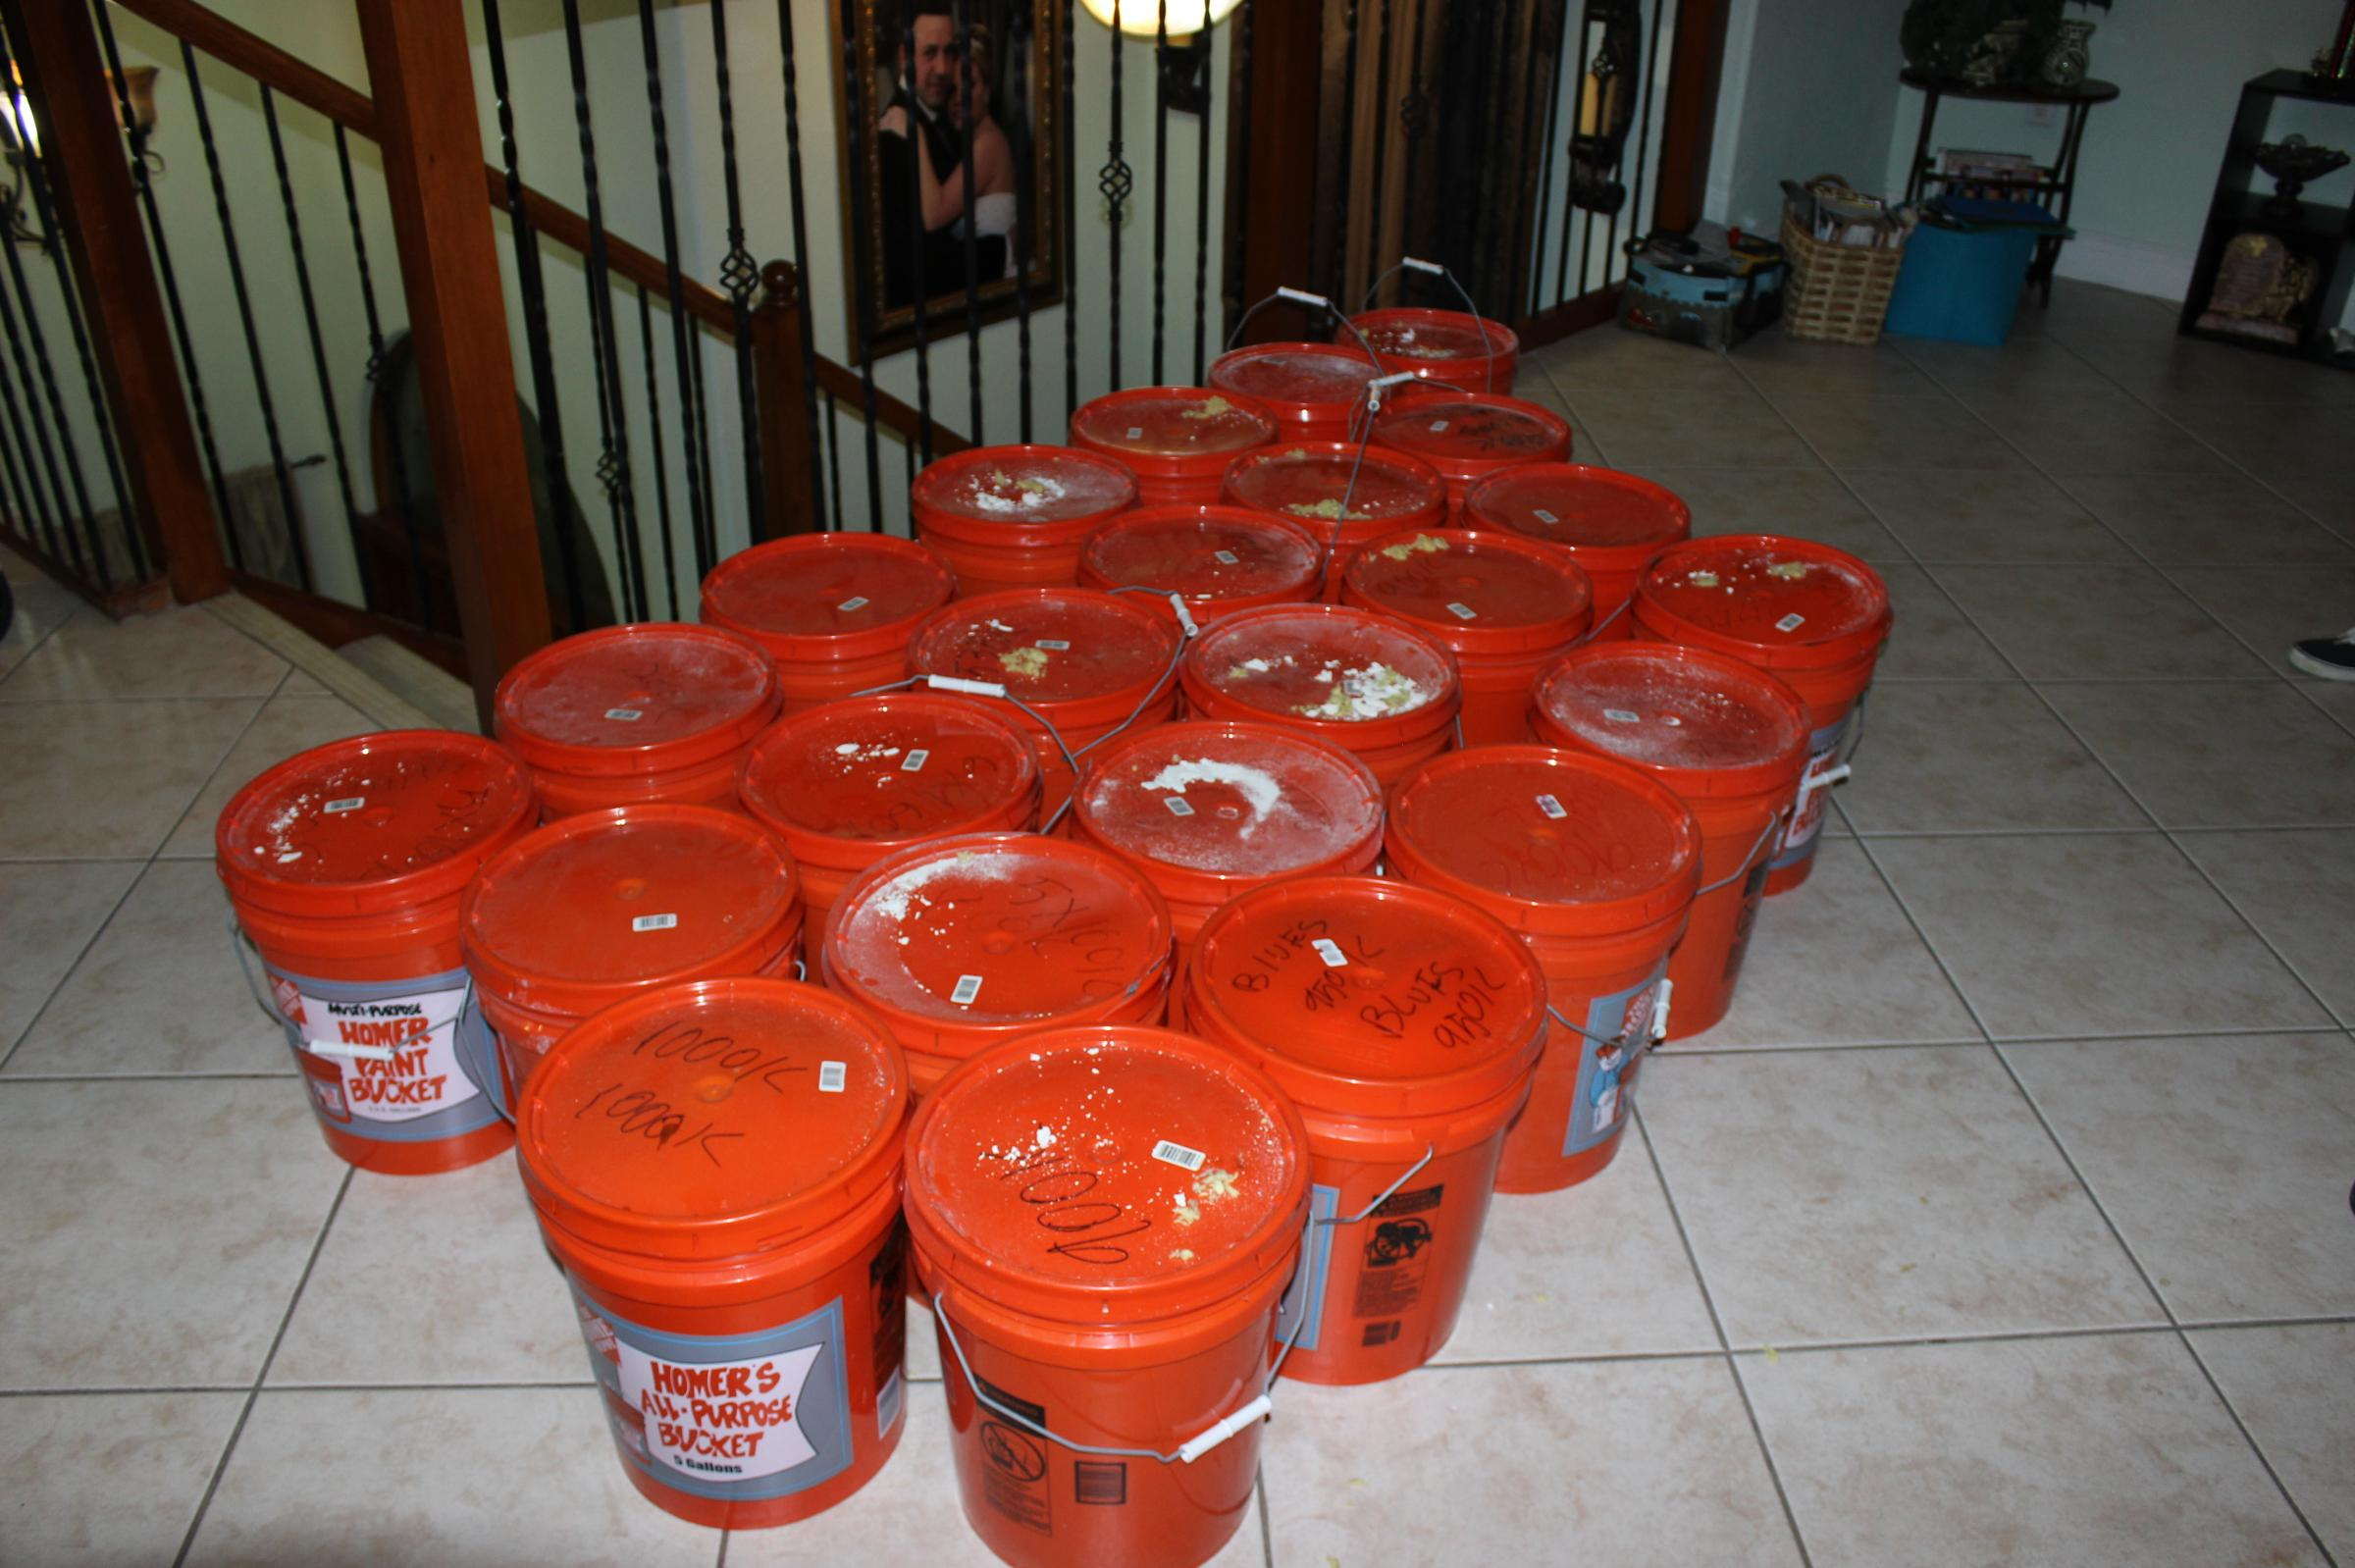 Millions of dollars found stashed in buckets at Miami home, police say